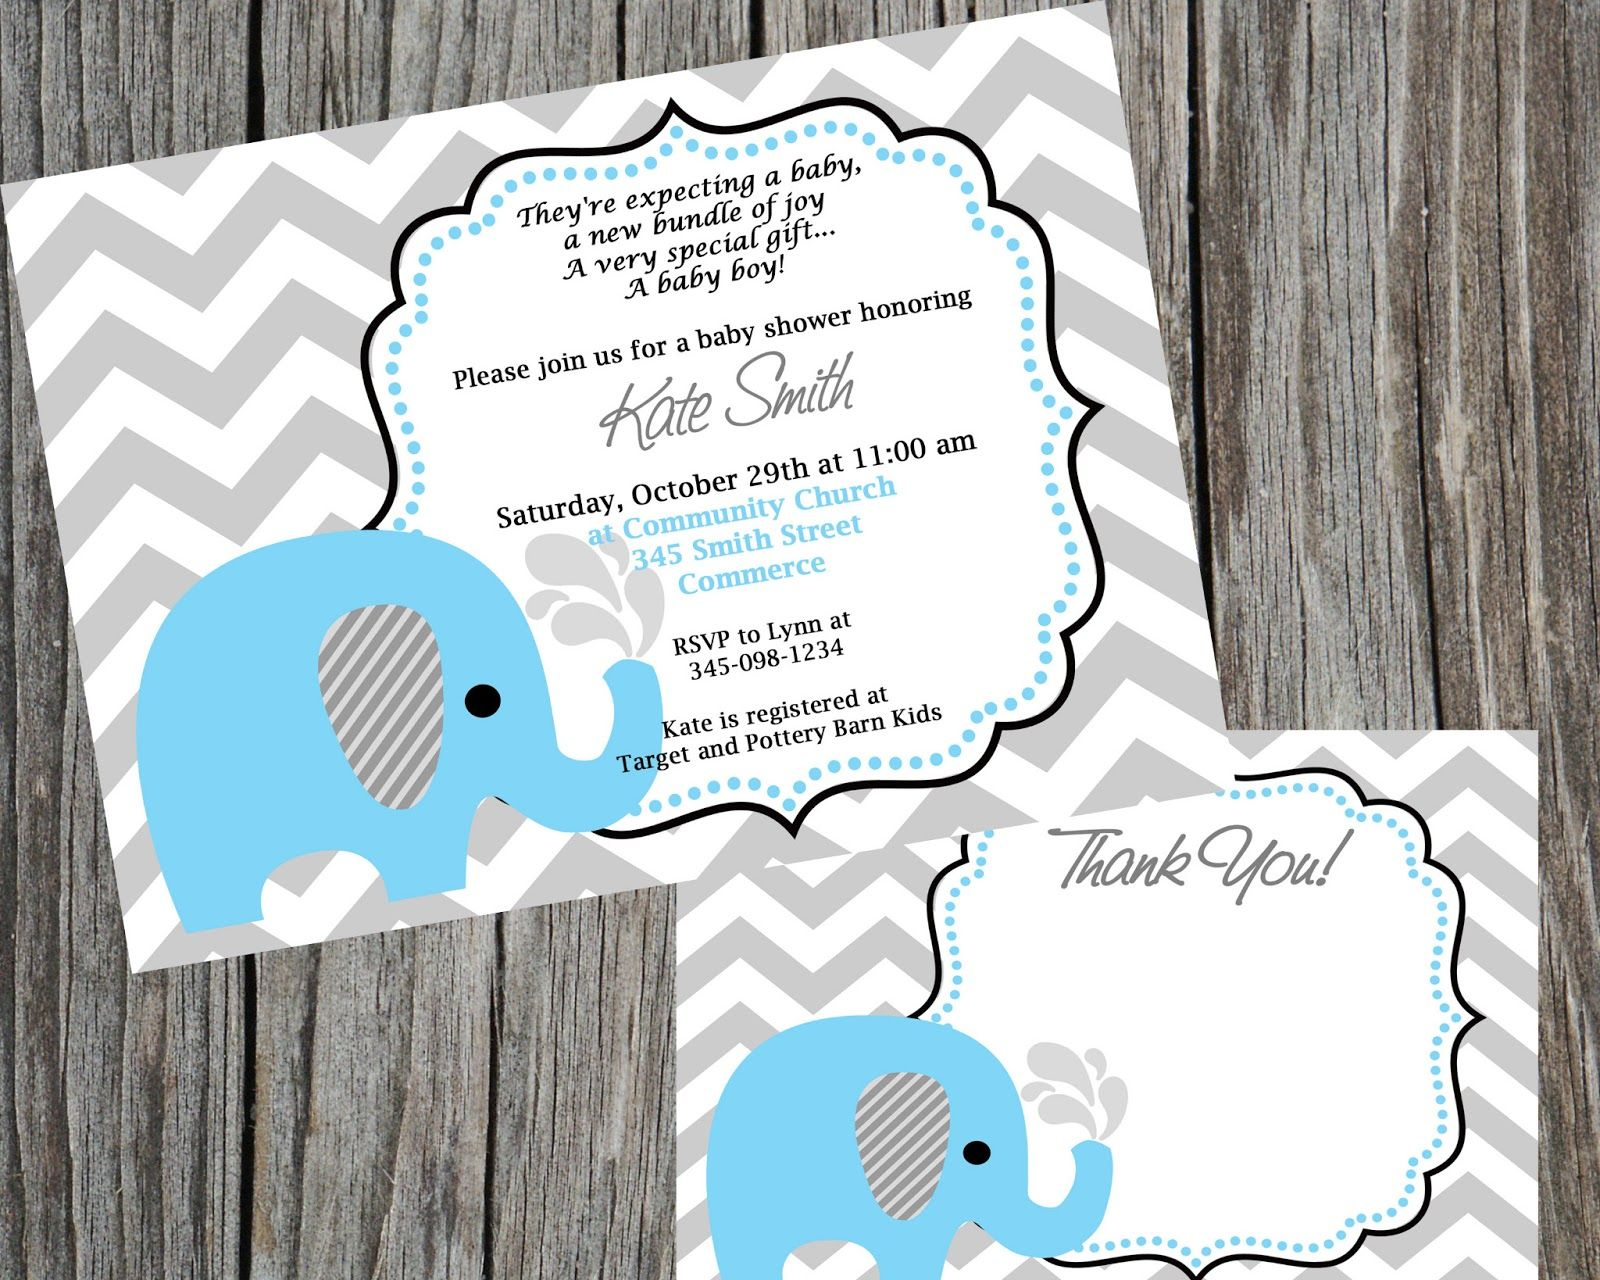 Blue Elephant Baby Shower or Birthday Party theme from Cohen Lane ...